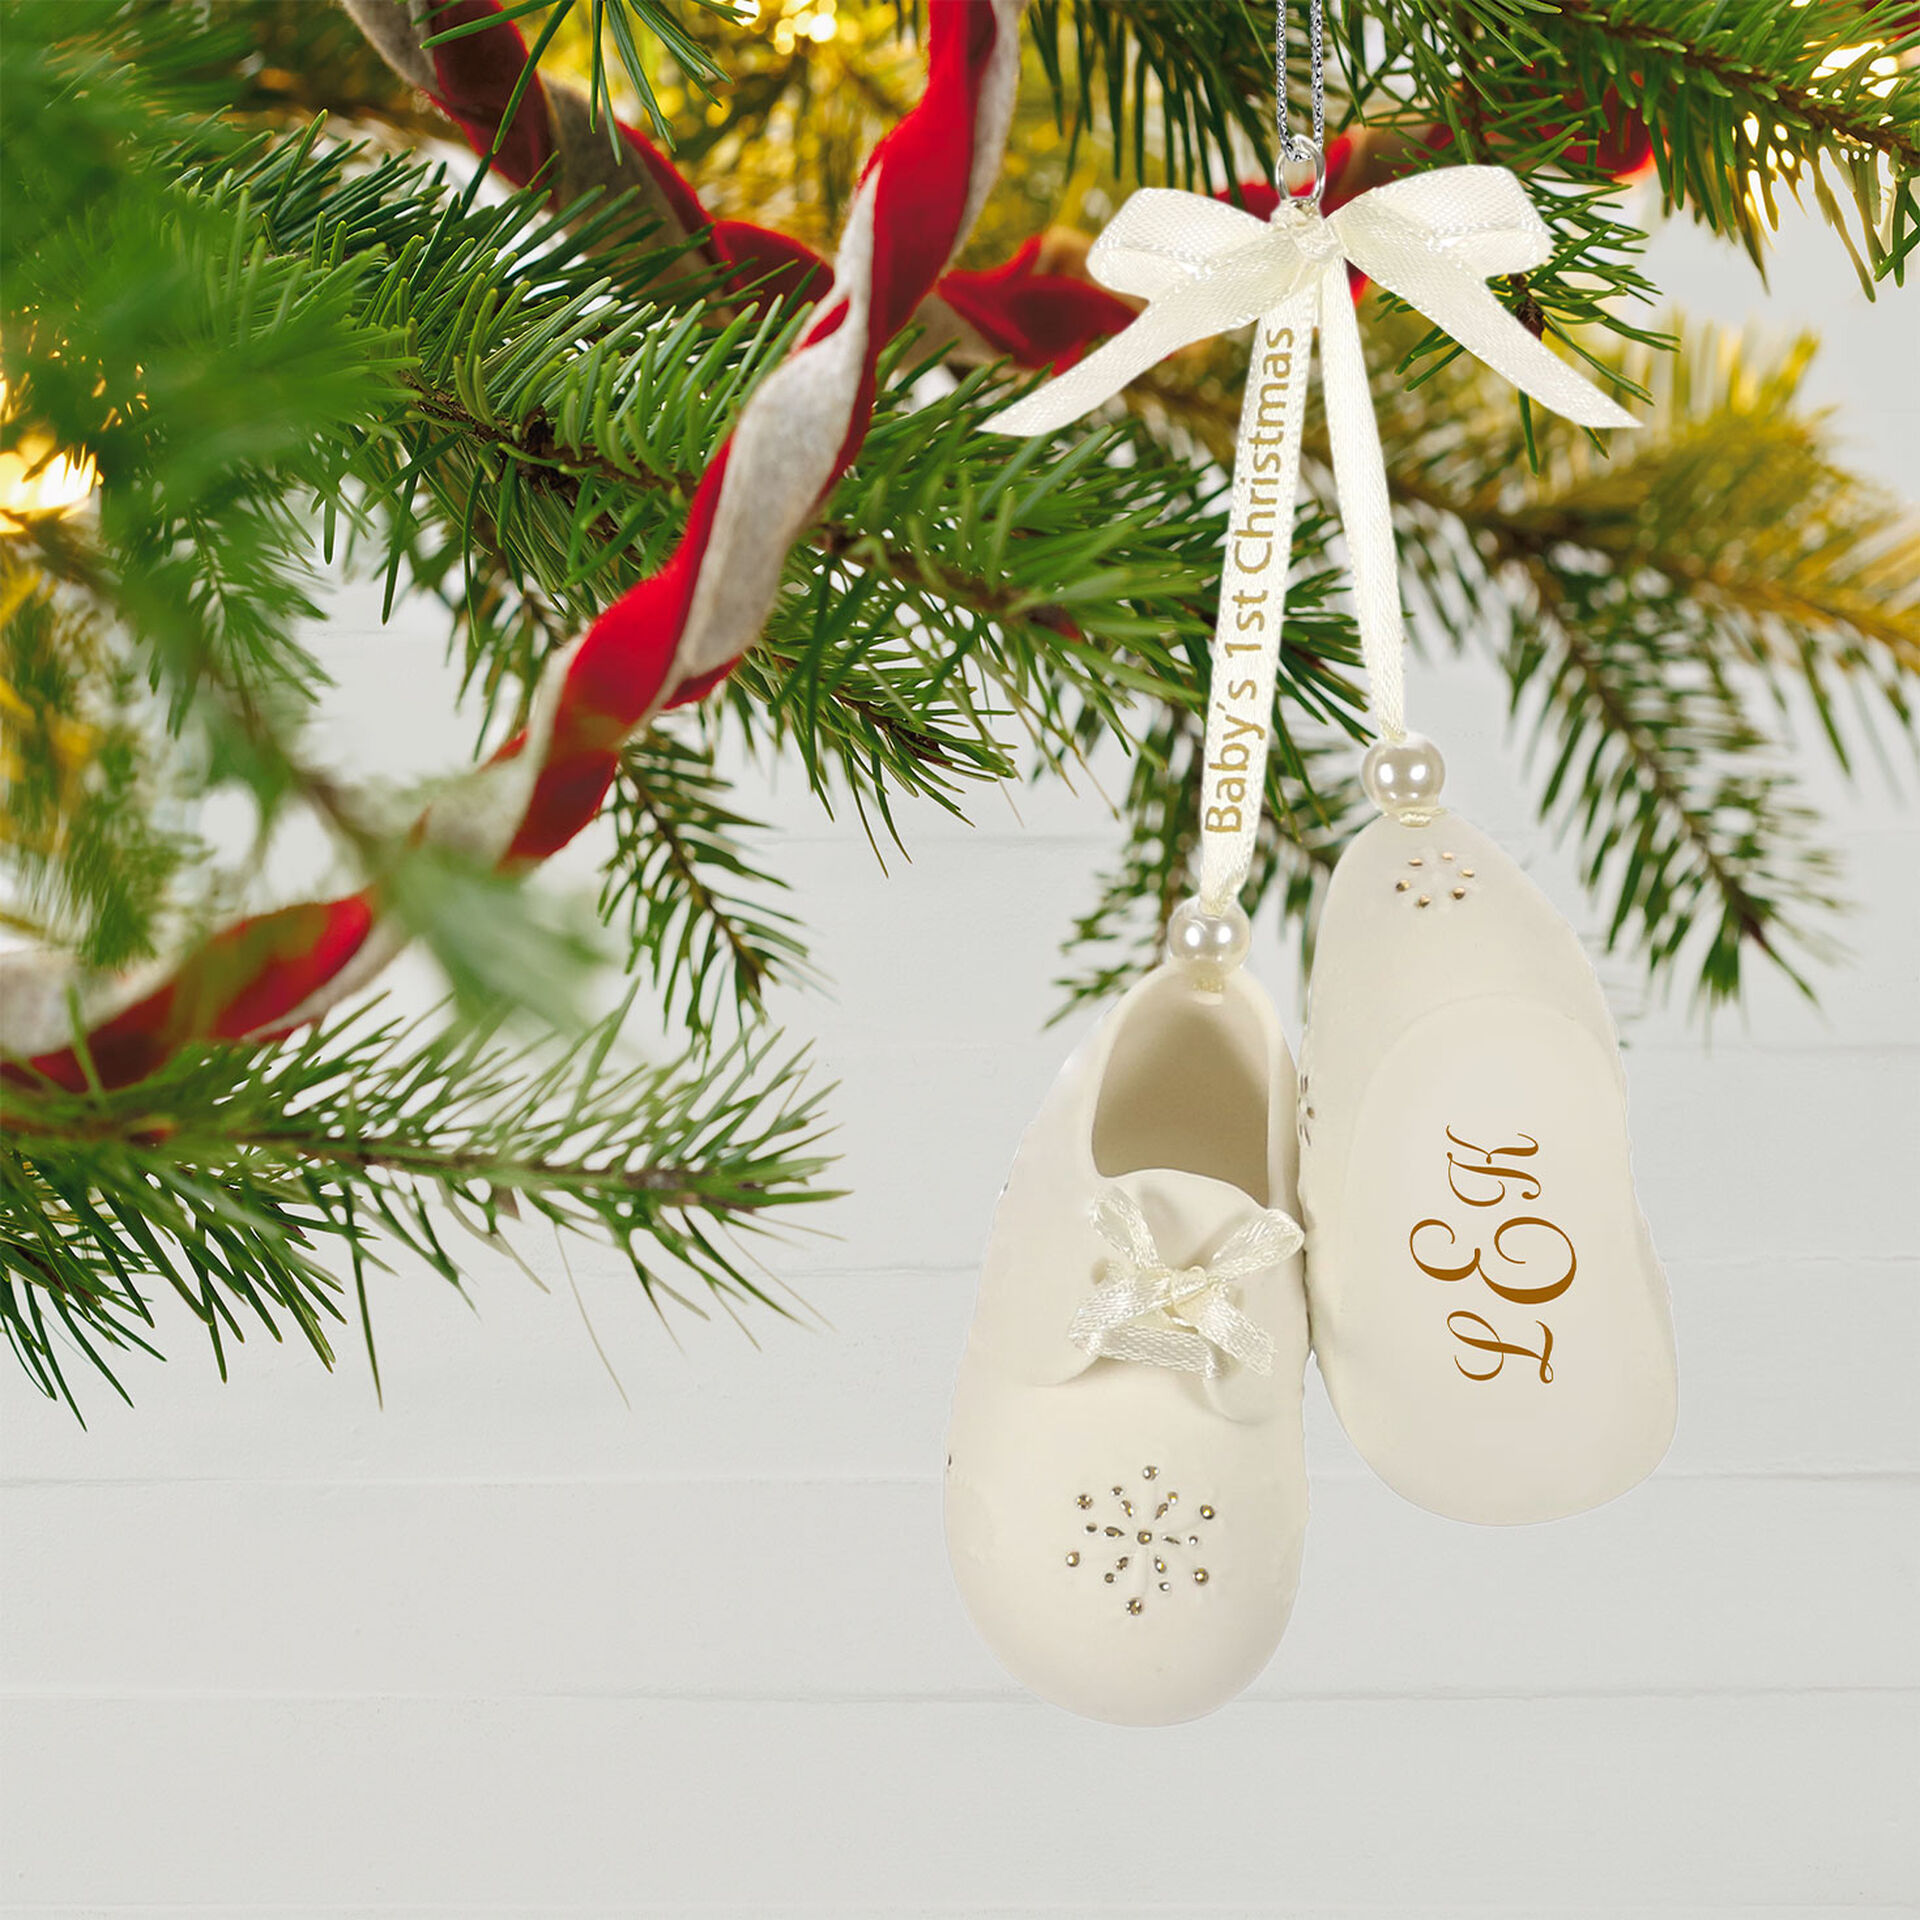 2013 Hallmark Our First Christmas Picture Christmas Tree Ornament New